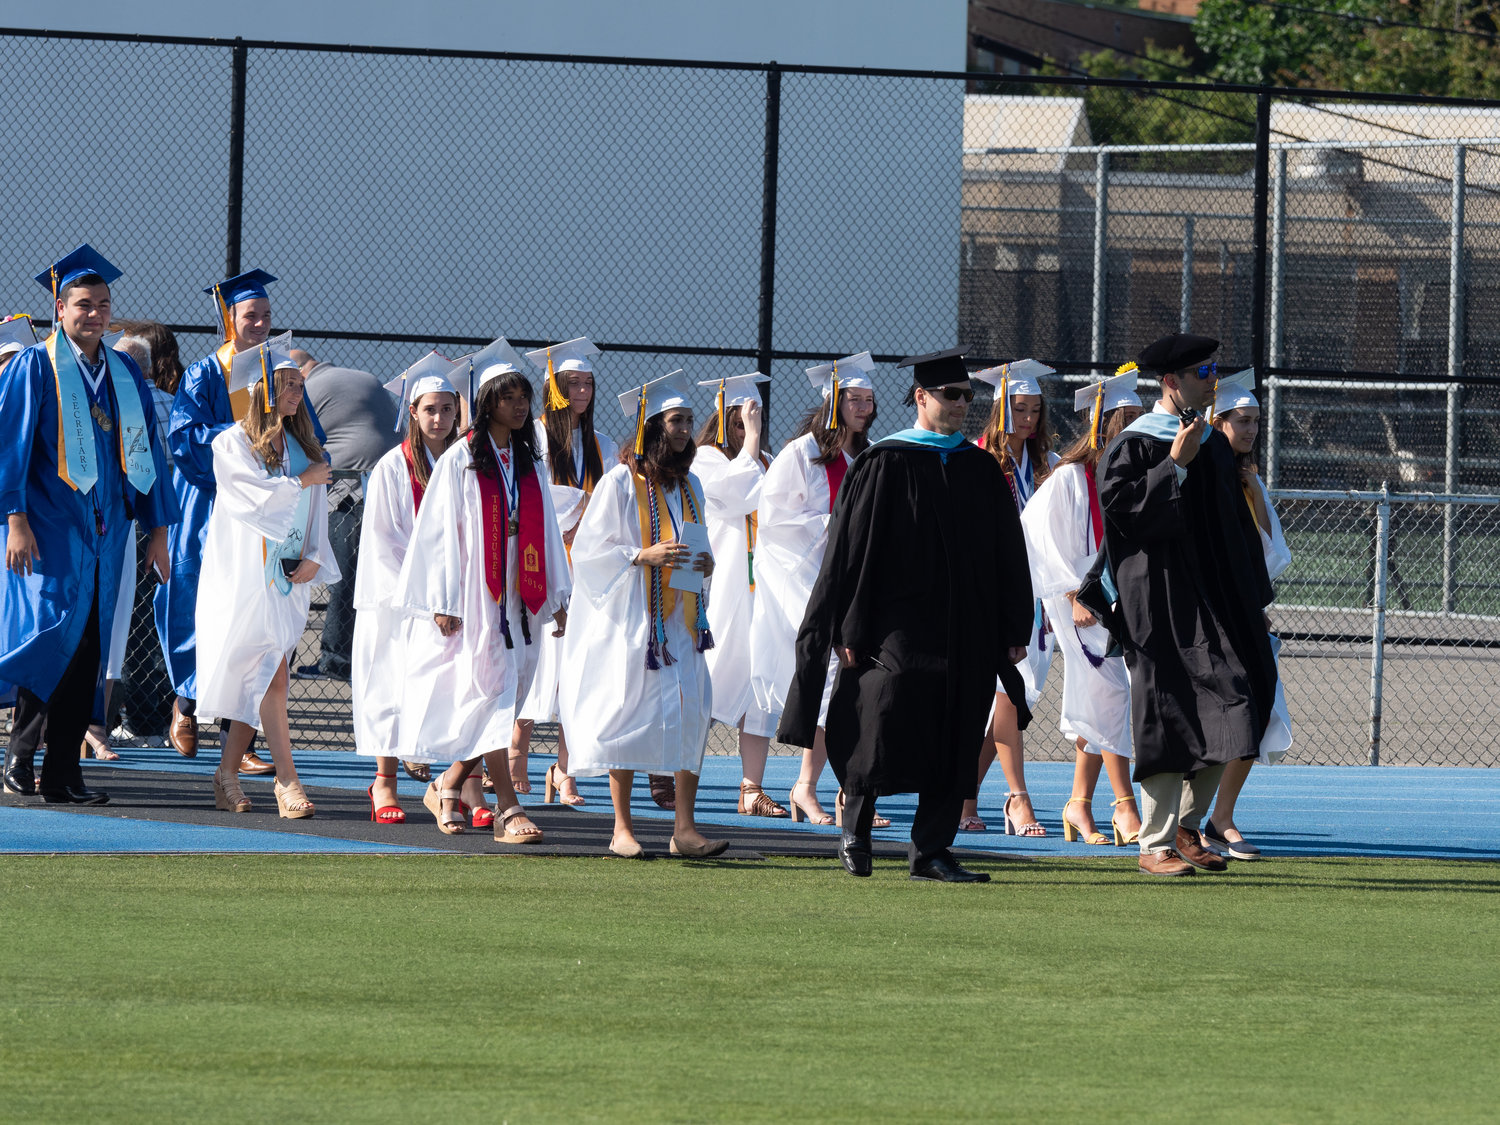 Oceanside High School celebrated its class of 2019 with a commencement ceremony last Friday.